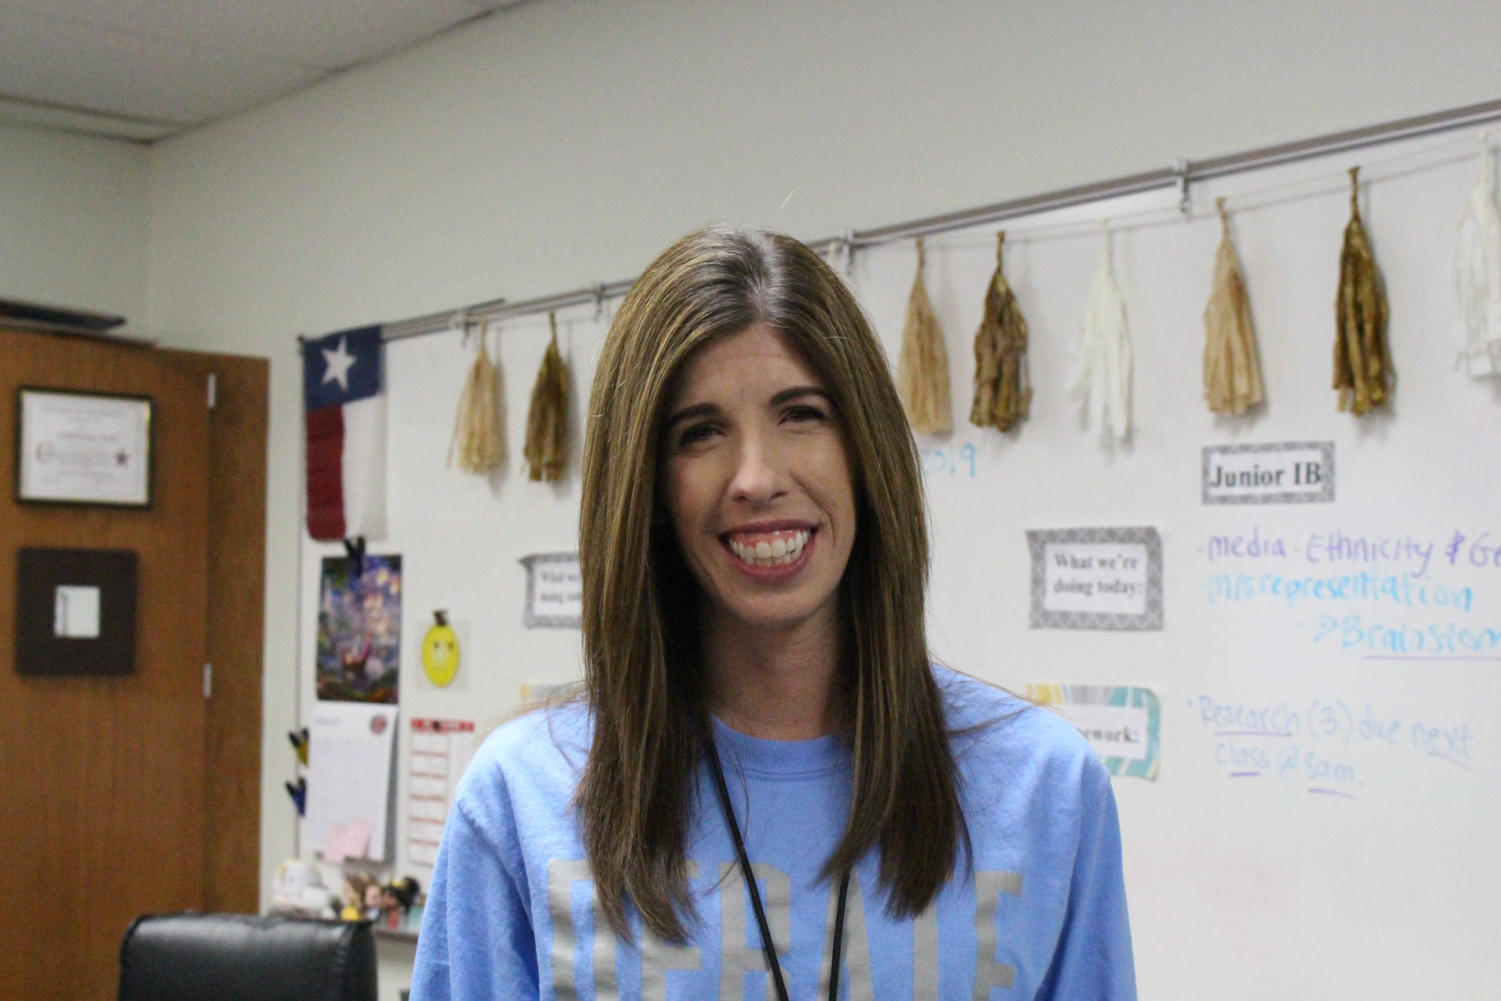 Coppell High School English IV, IB English III and Extended Essay teacher Stephanie Ball was elected as the Teacher of the Issue. Ball was chosen because of her love and experience in bonding with students.